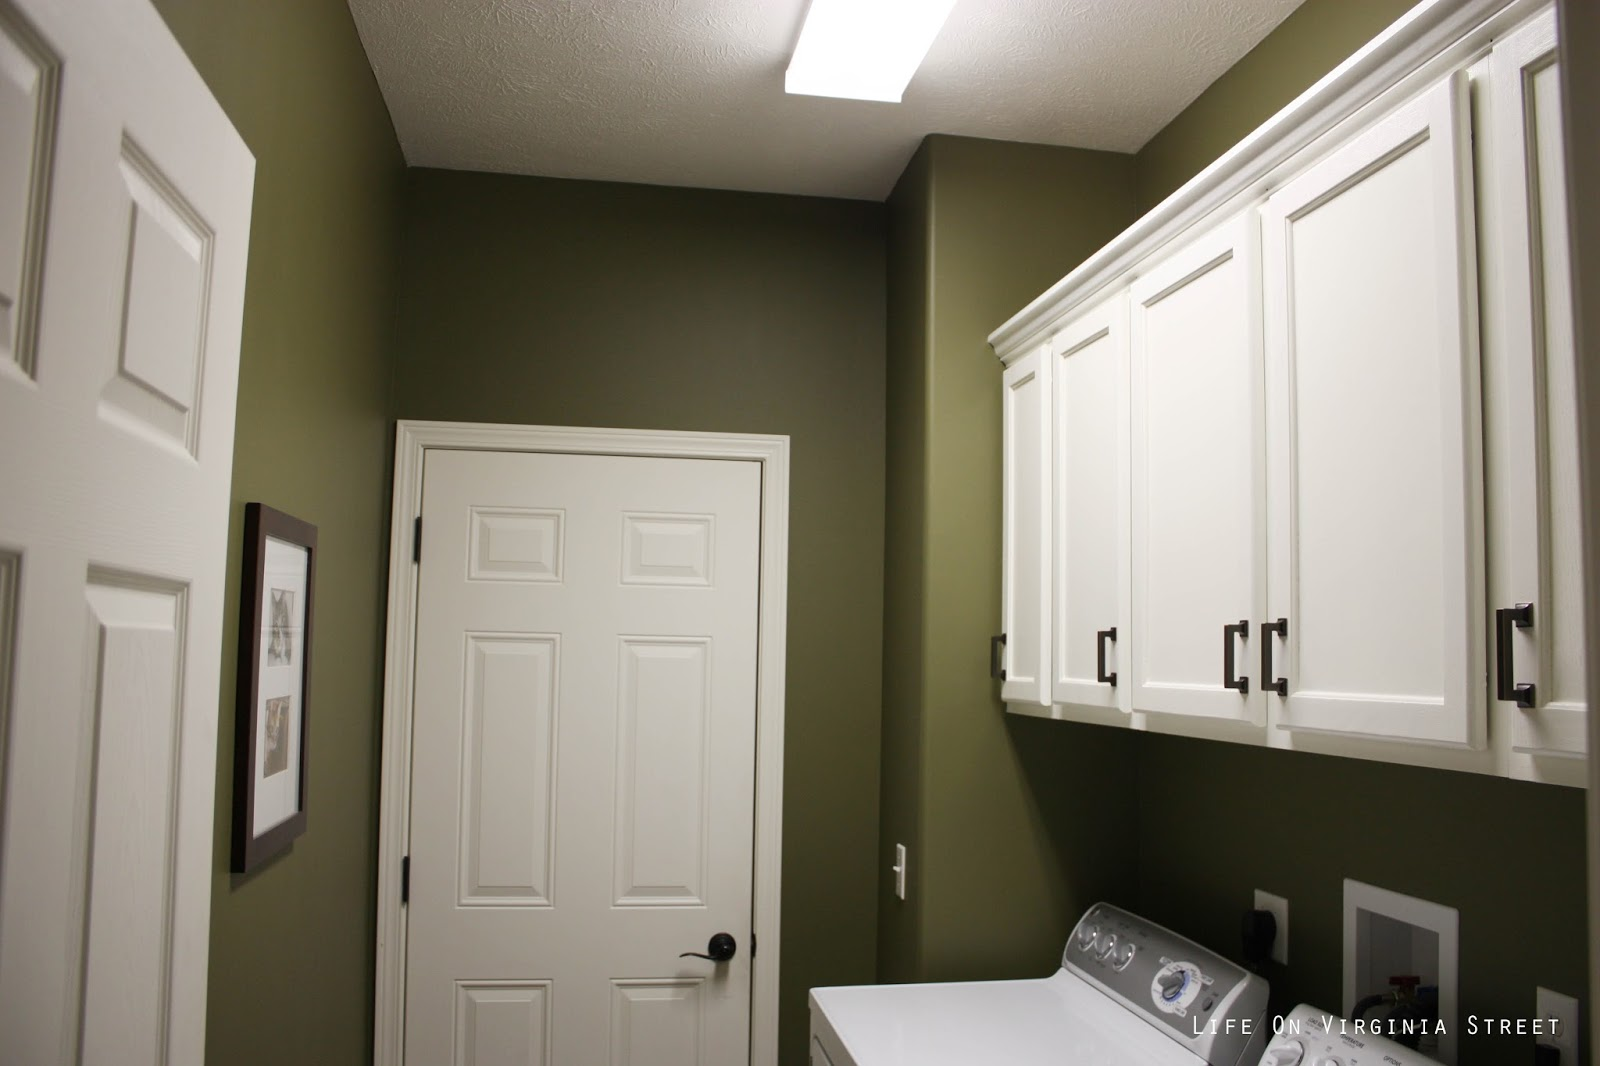 Paint colors life on virginia street - Paint colors for laundry room ...